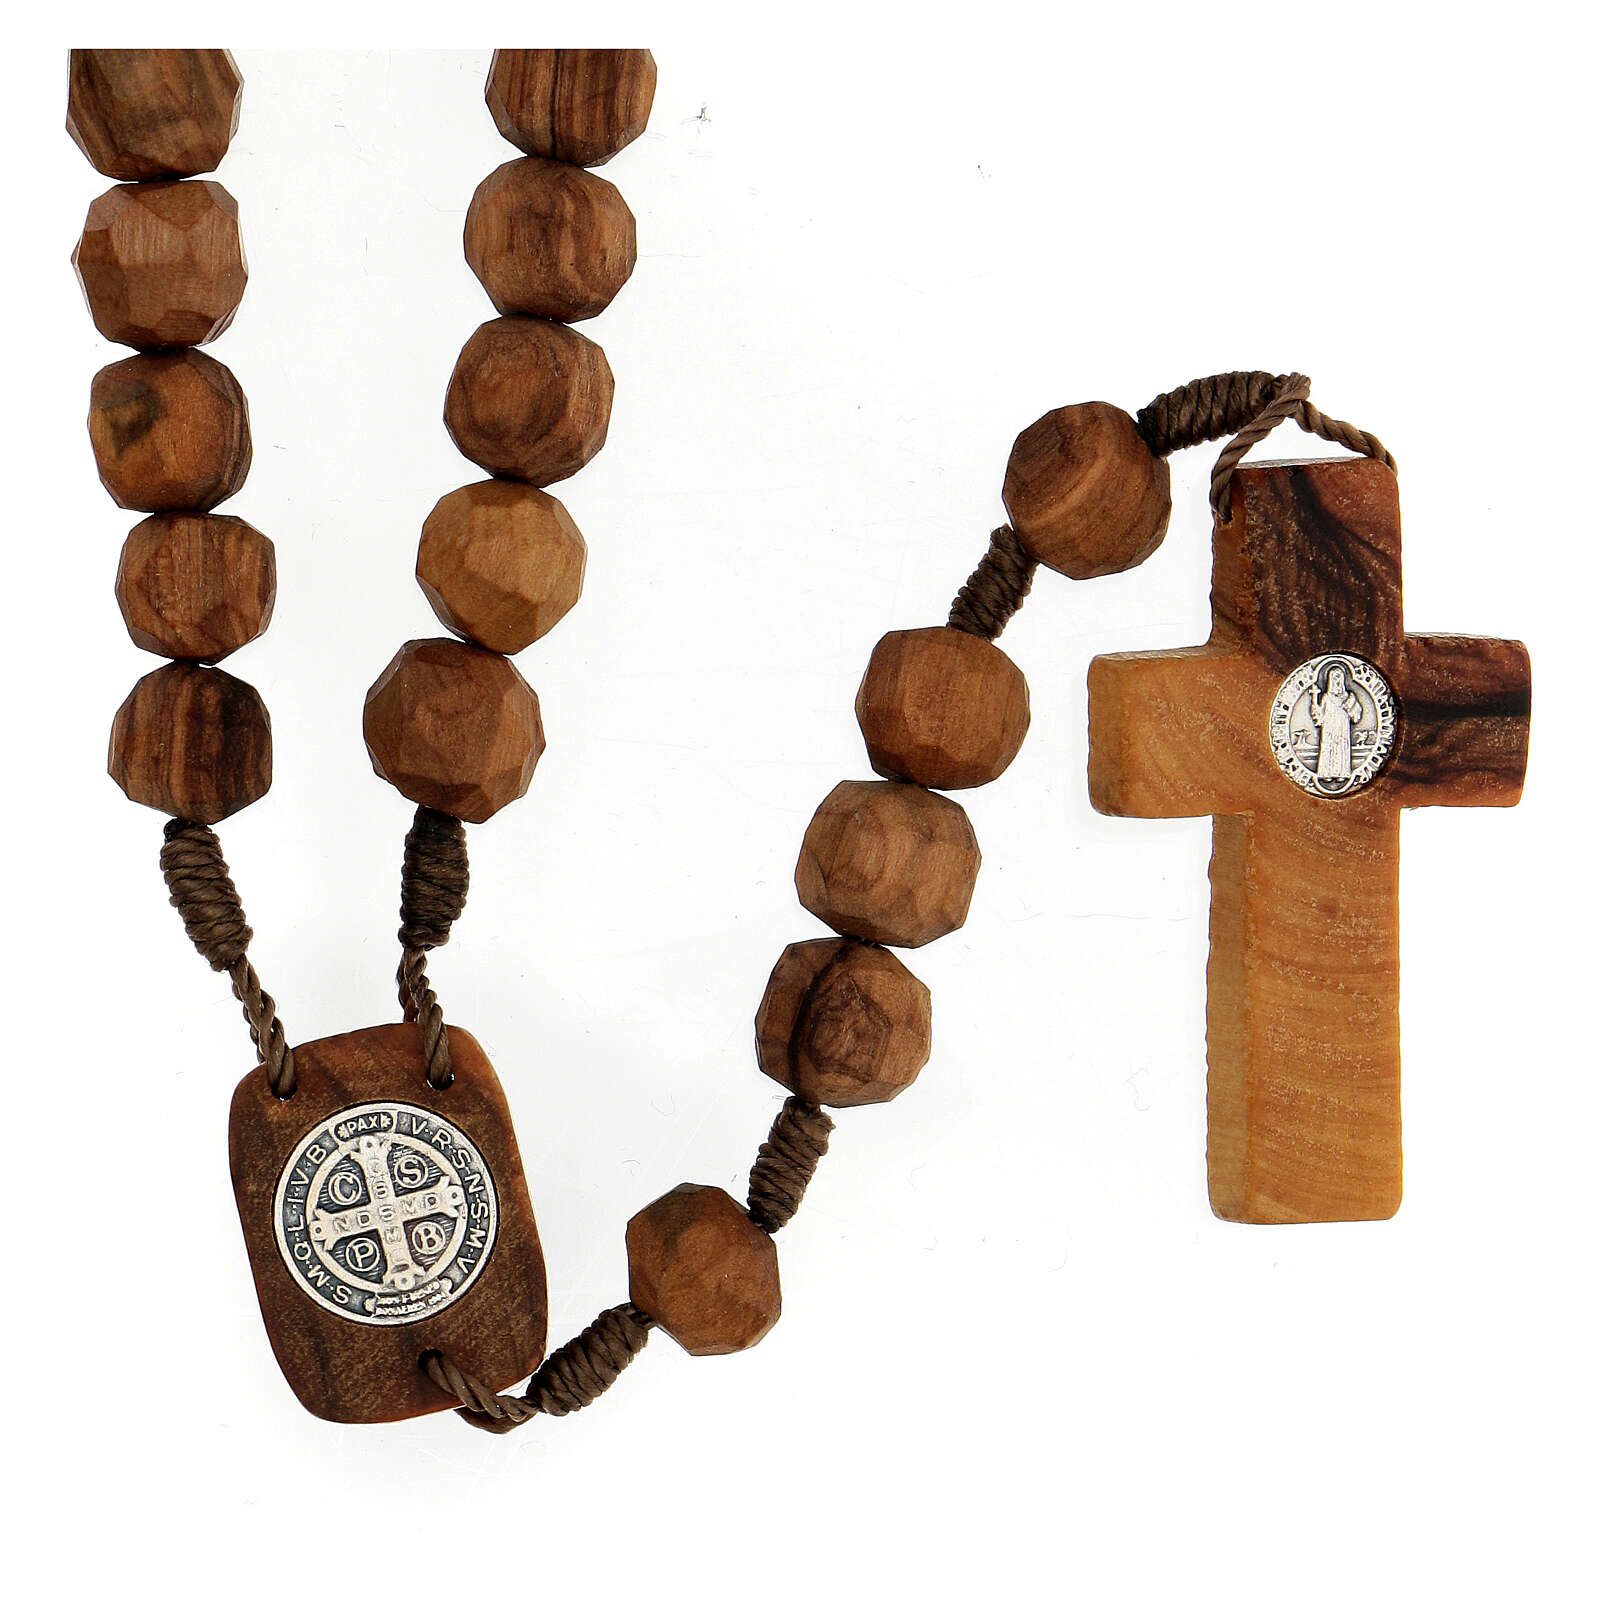 Medjugorje rosary with olive wood beads 9 mm, Saint Benedict medals and cross 4